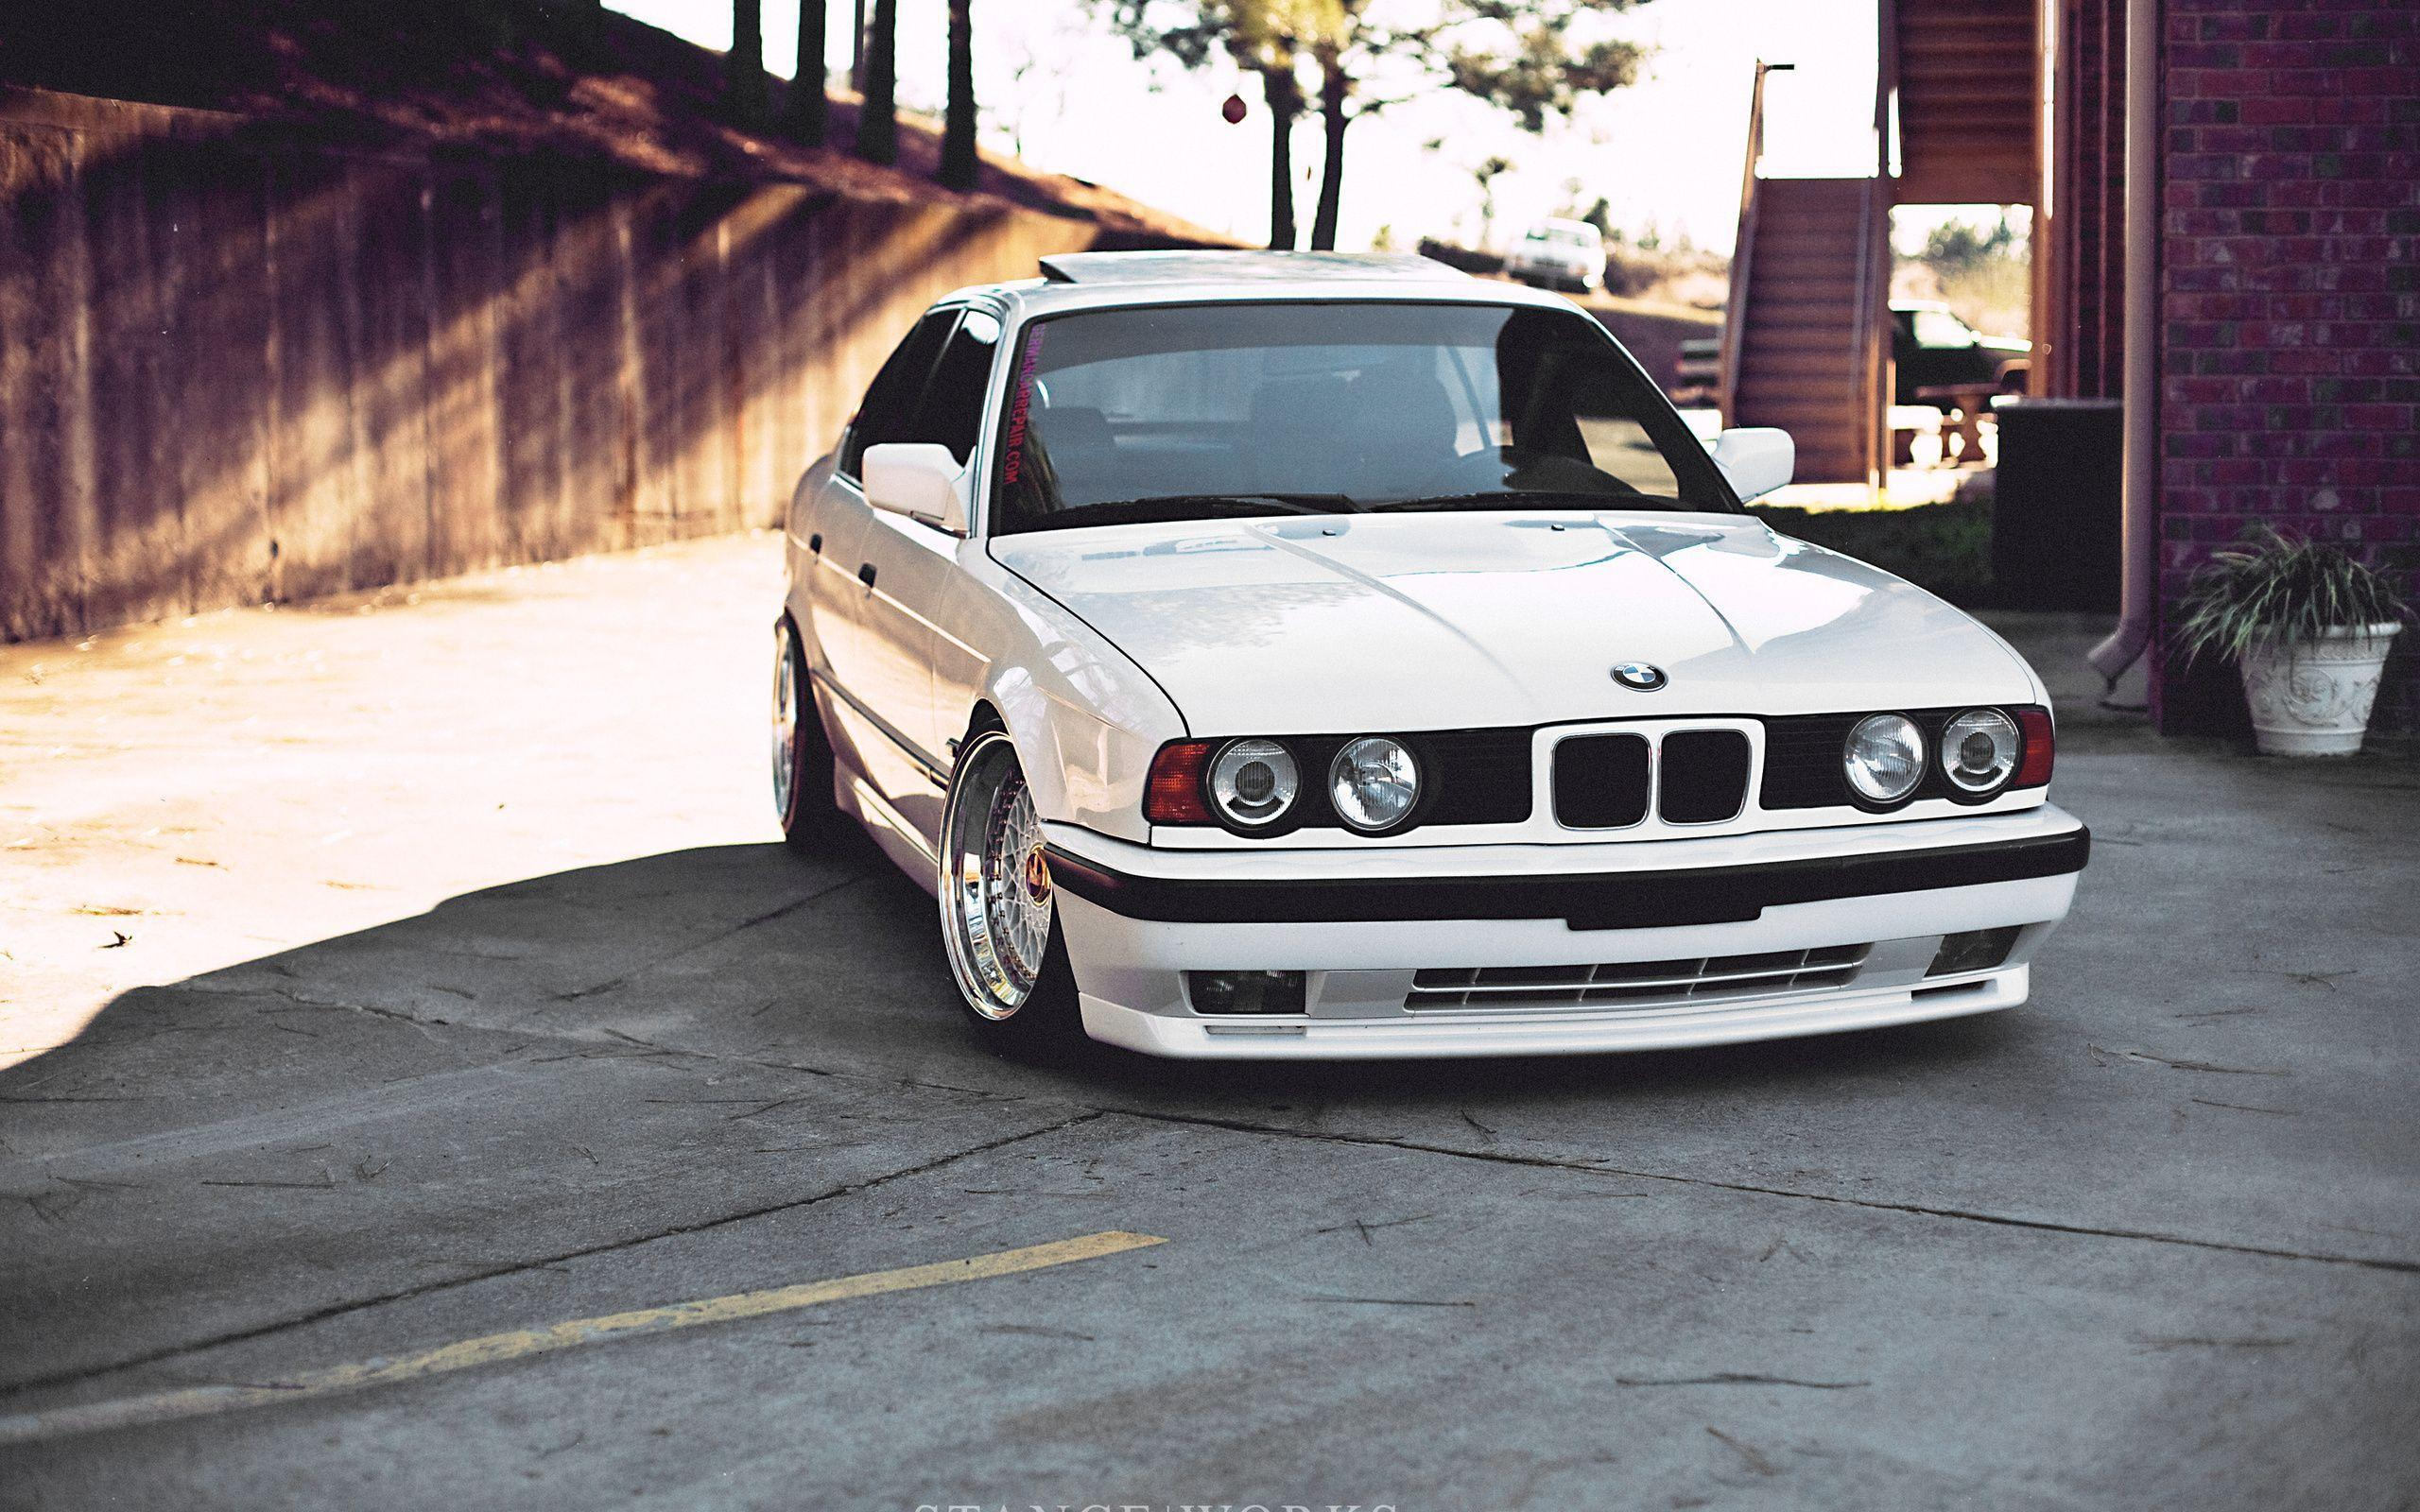 BMW E34 Wallpapers - Top Free BMW E34 Backgrounds - WallpaperAccess